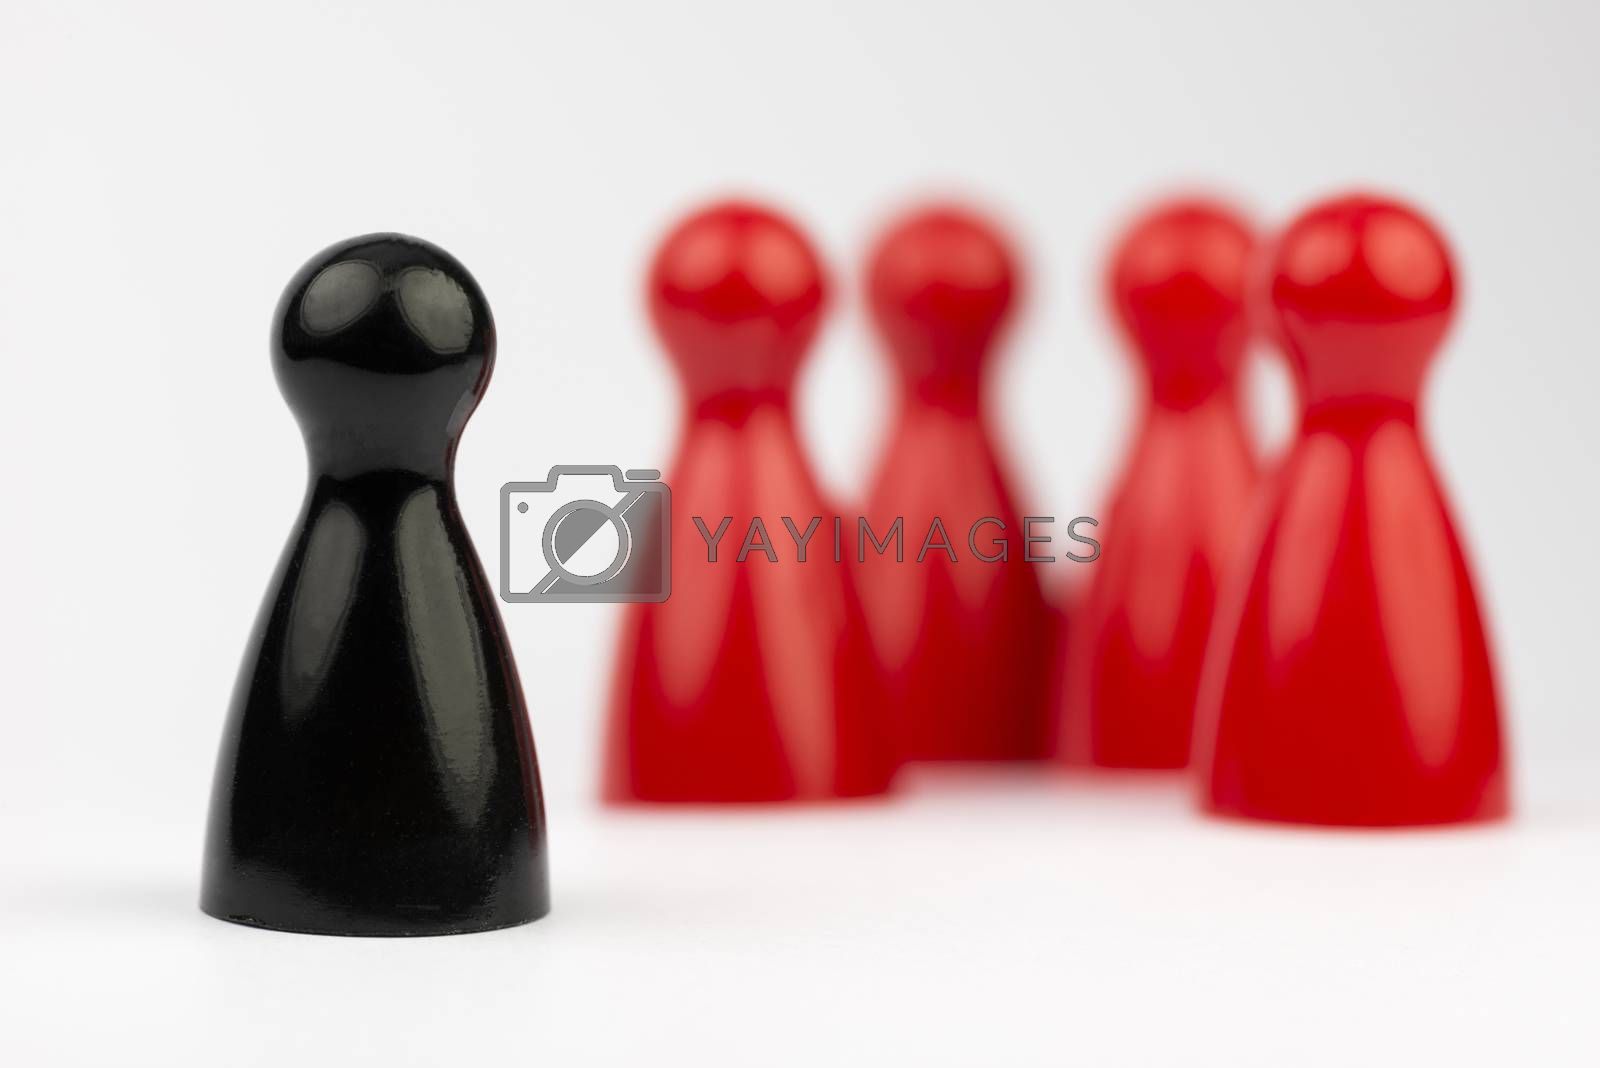 Conceptual game pawns  by Tofotografie